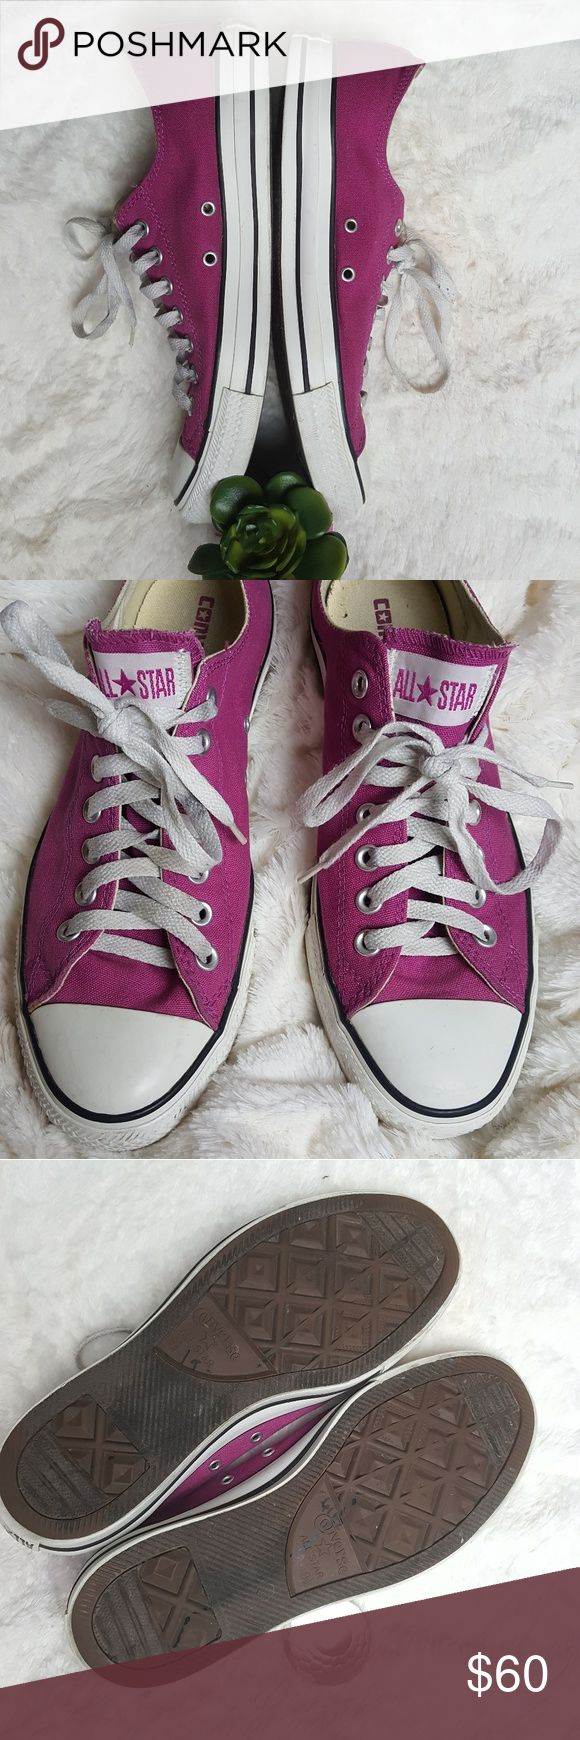 Fuschia Pink Unisex Converse Mens 9.5/ Womens 11.5 Great Converse shoes. UNISEX: Men's 9.5/Women's 11.5 Fuschia/Dark Pink. VERY COOL looking Converse shoes. Everyone else is wearing black...is your goal to fit in or stand out? You will LOVE these shoes! Converse Shoes Sneakers